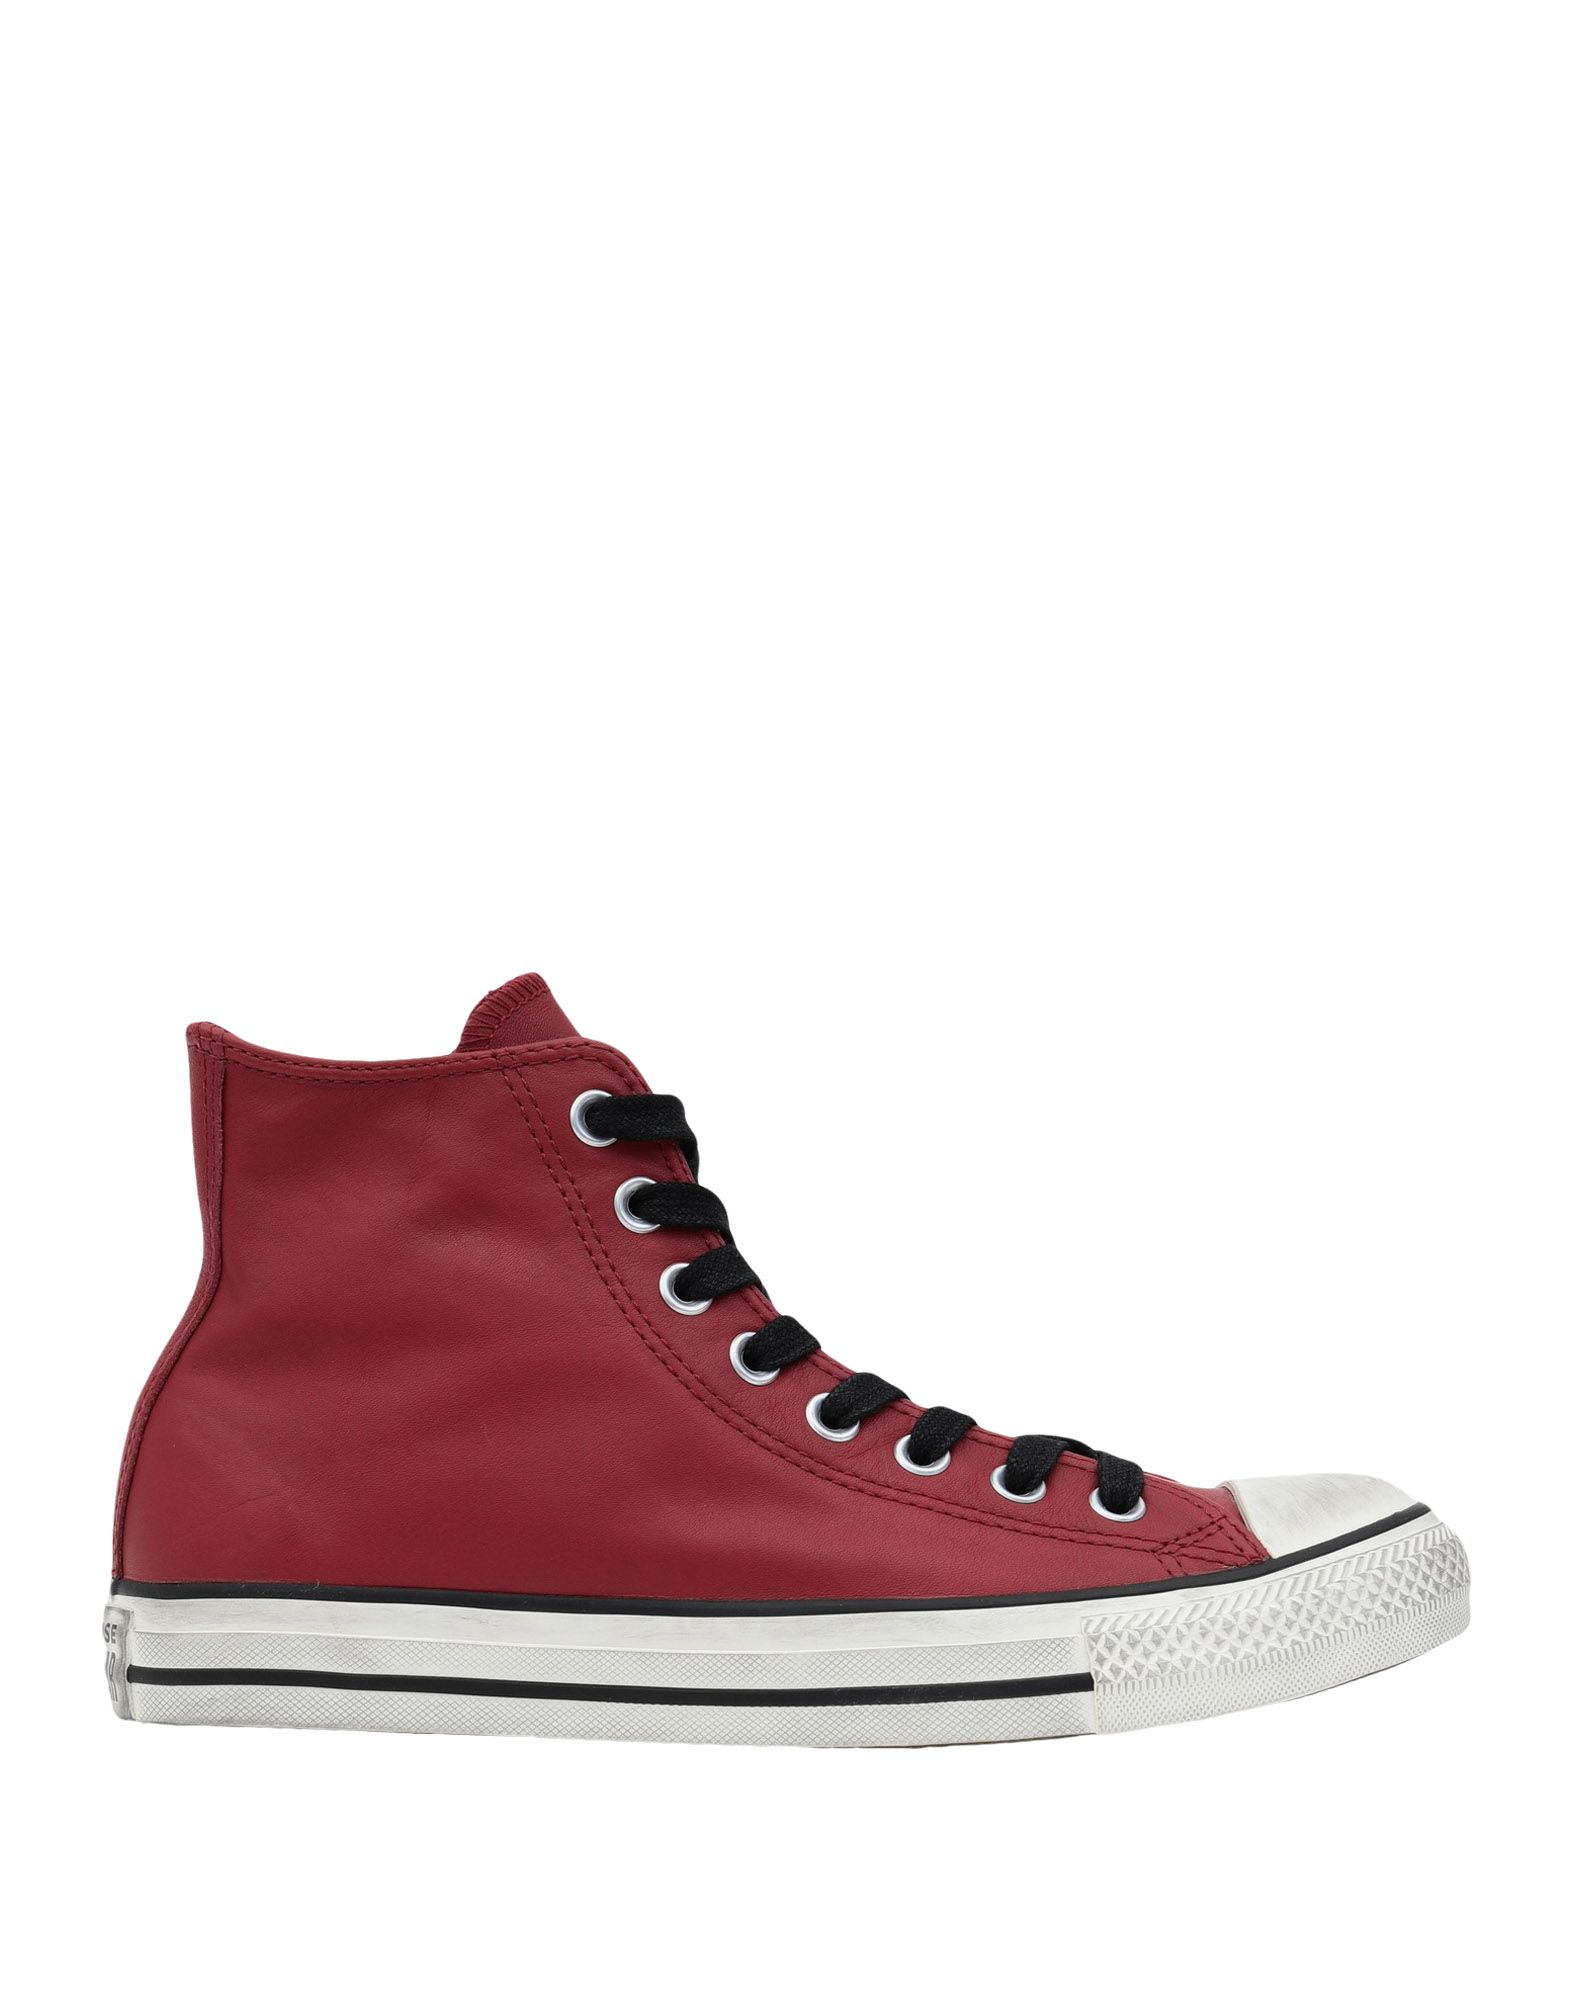 Scarpe da Ginnastica Converse All Star Ctas Distressed Hi - Donna - 11574650IE